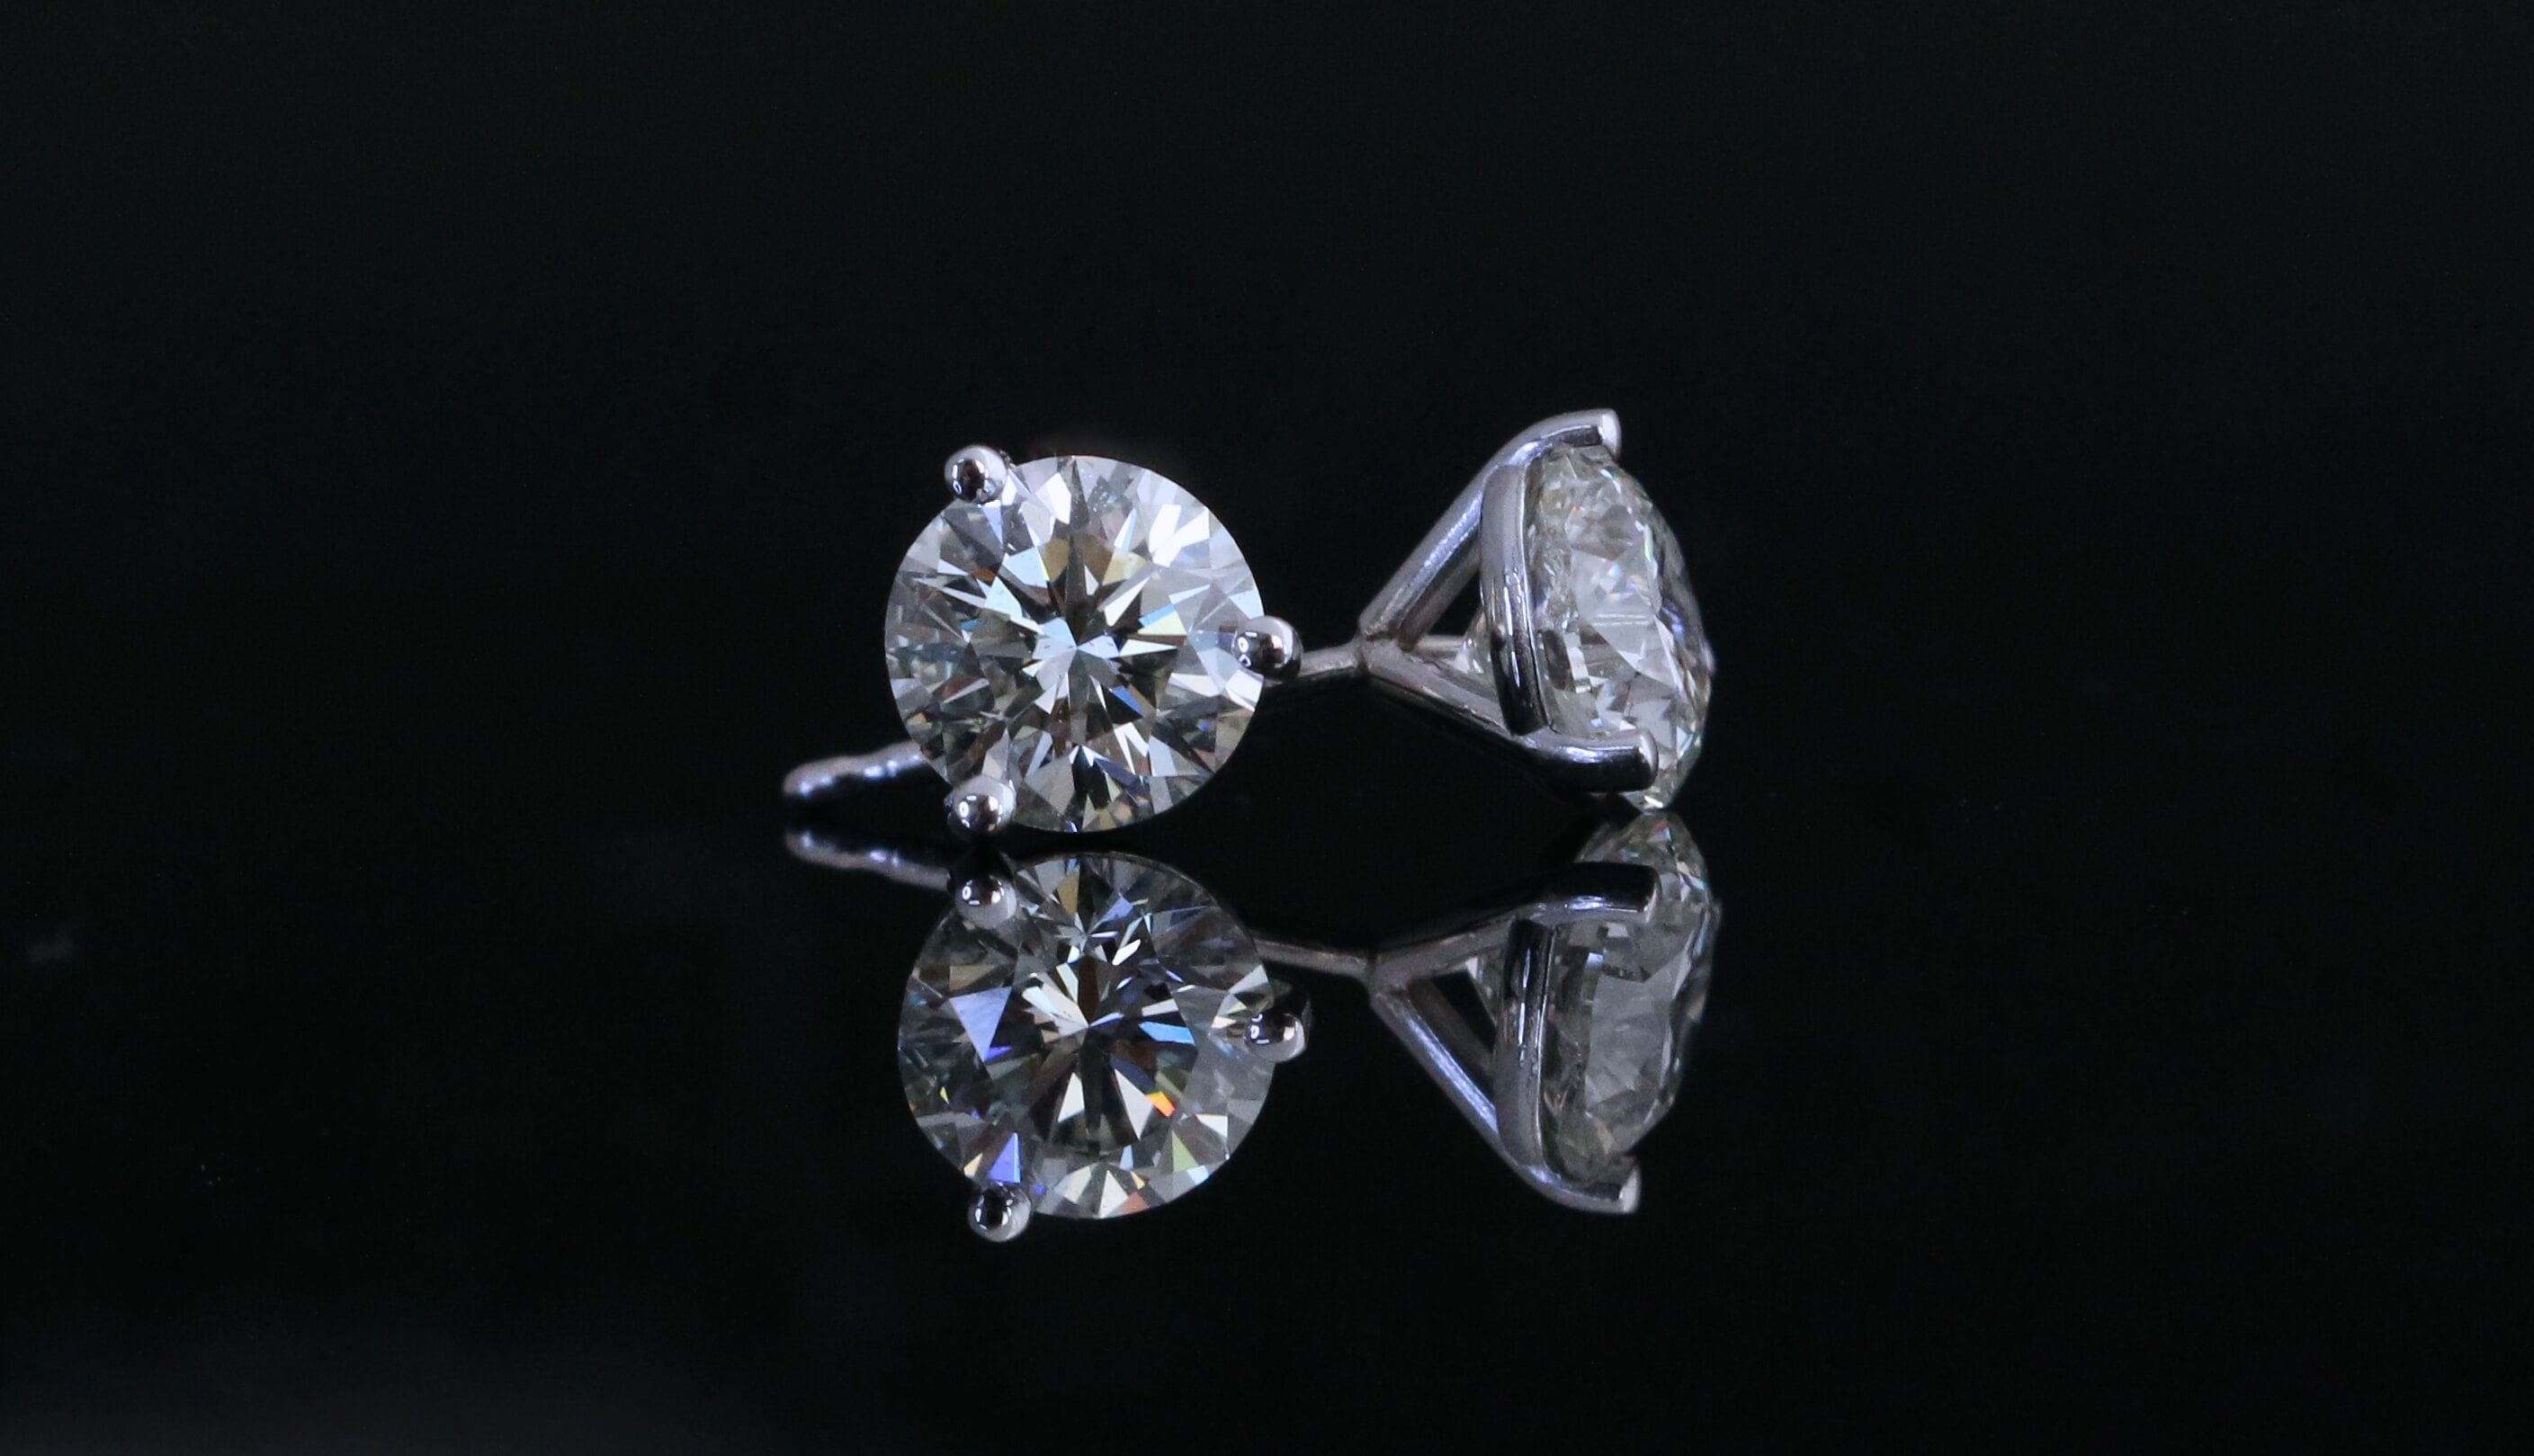 diamond zirconia simply silver sterling new of earrings flat cubic earring stud